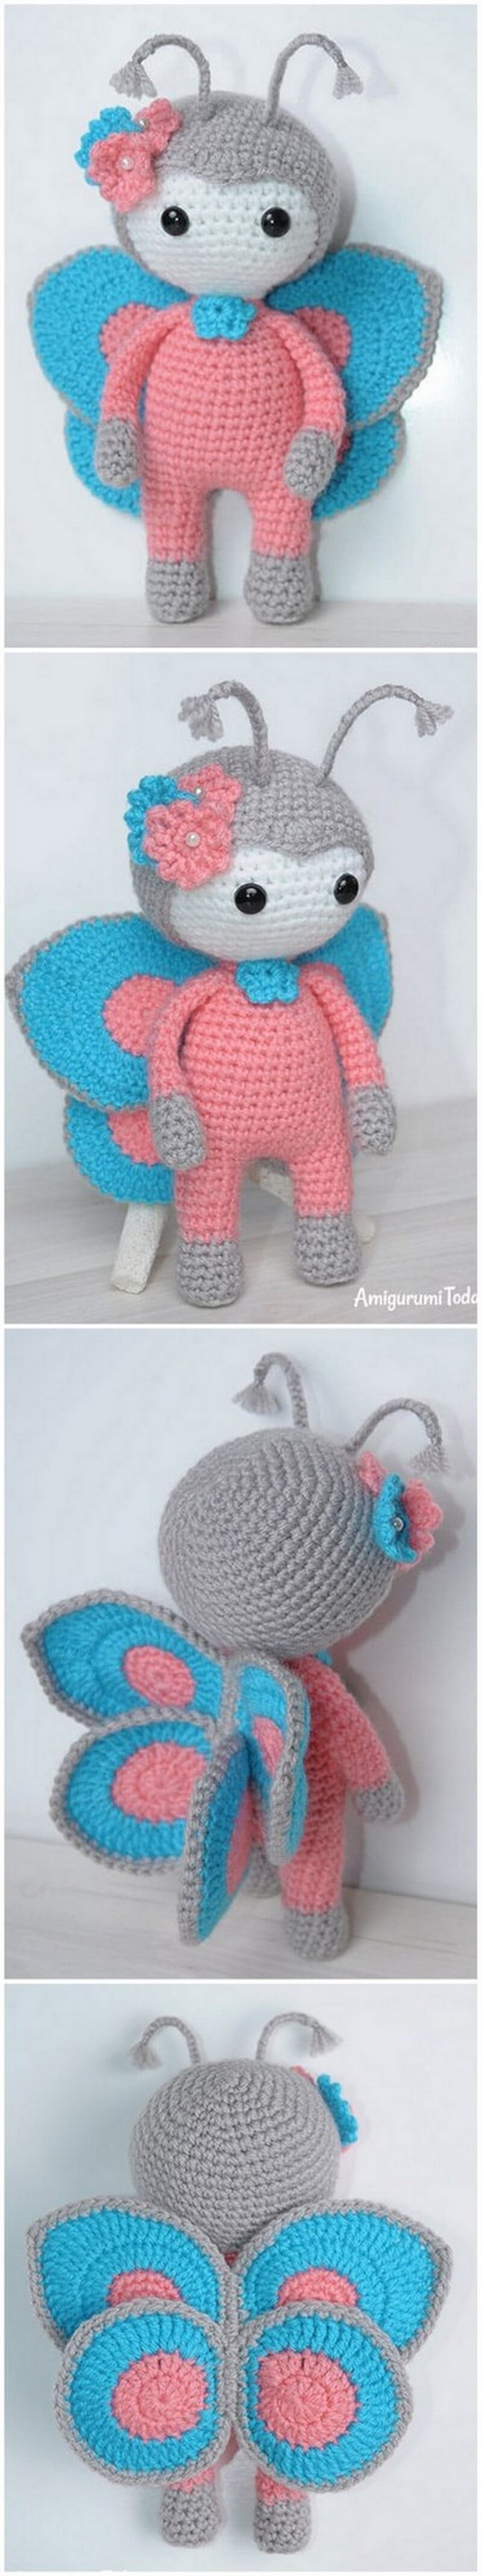 Crochet Amigurumi Doll Pattern (53)